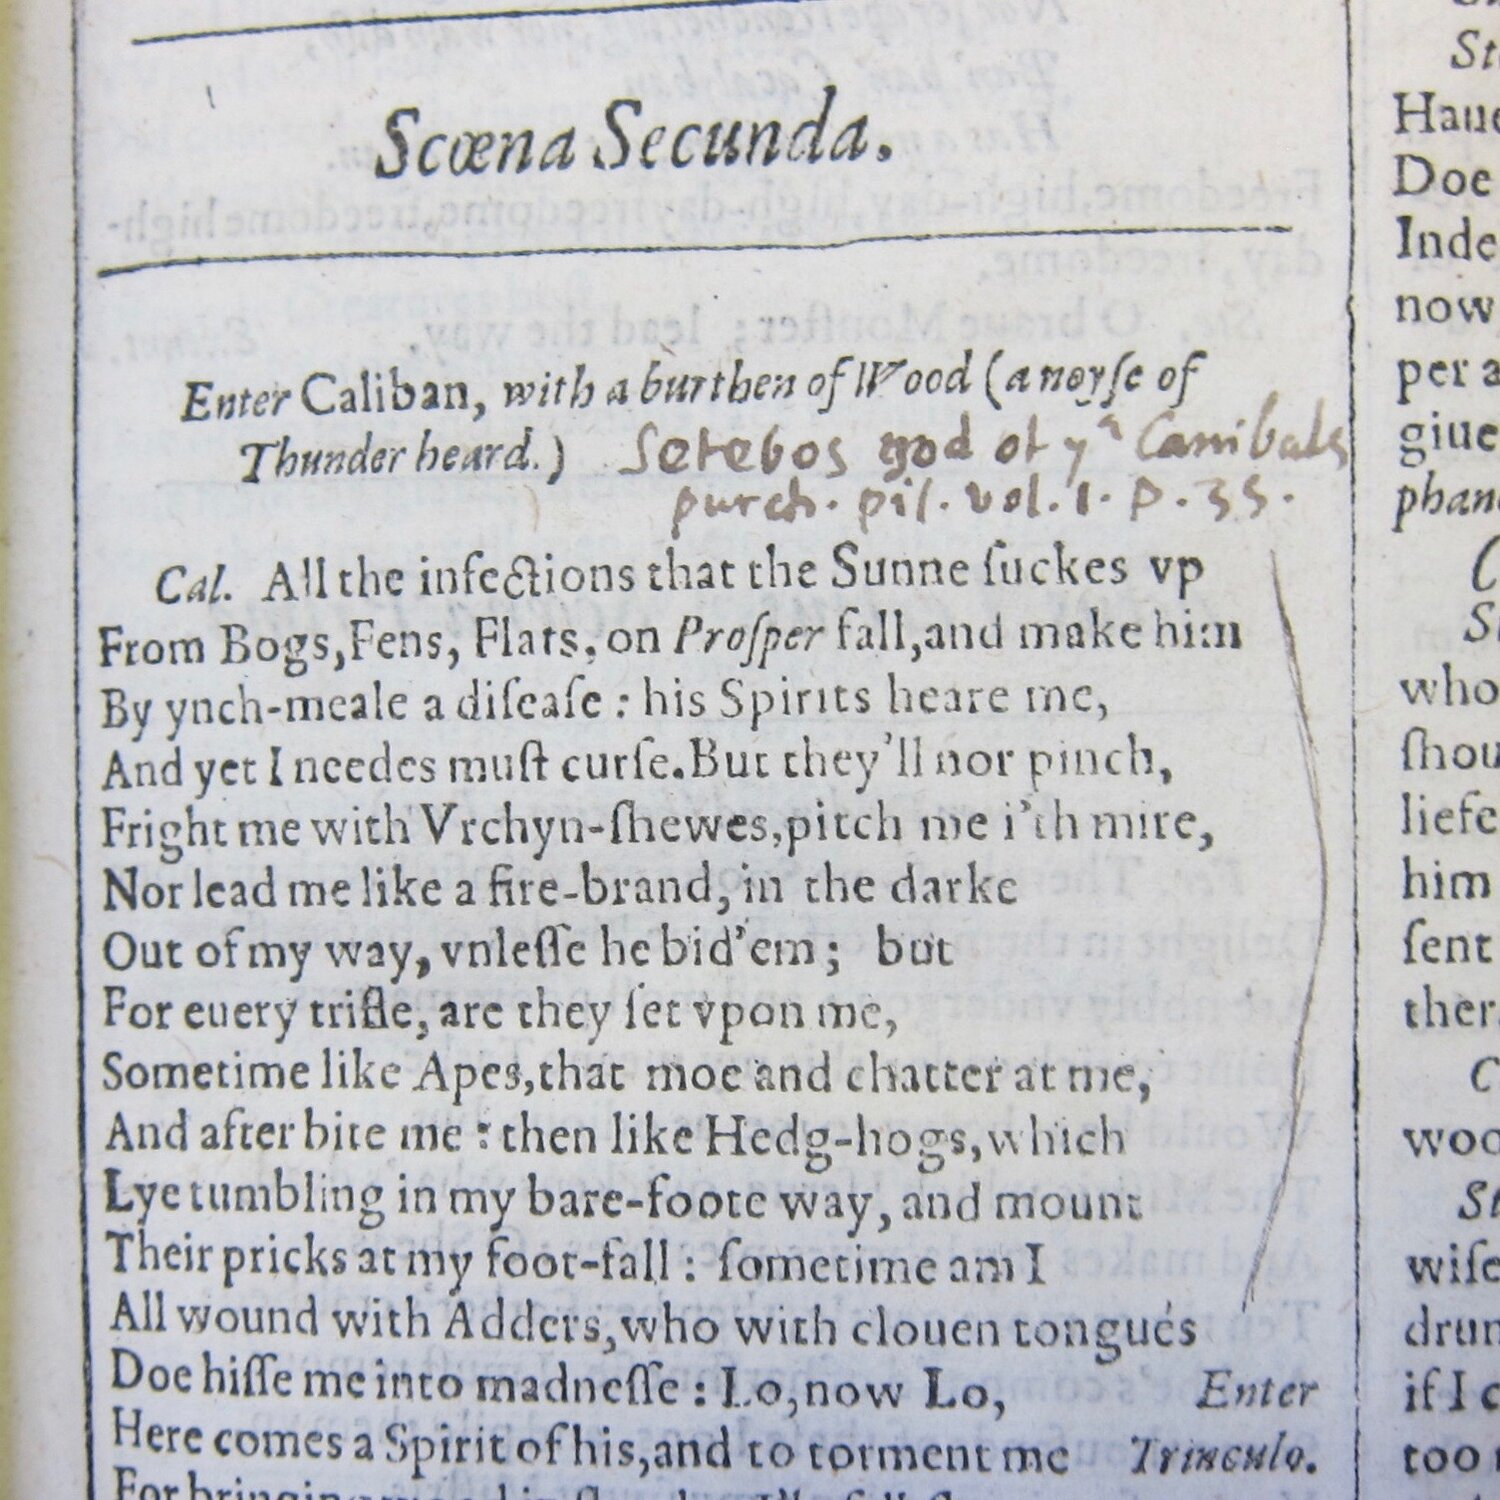 """A reference to Samuel Purchas'  Pilgrimes  (1625) in """"The Tempest."""" [Image reproduced with kind permission of the Free Library of Philadelphia.]"""